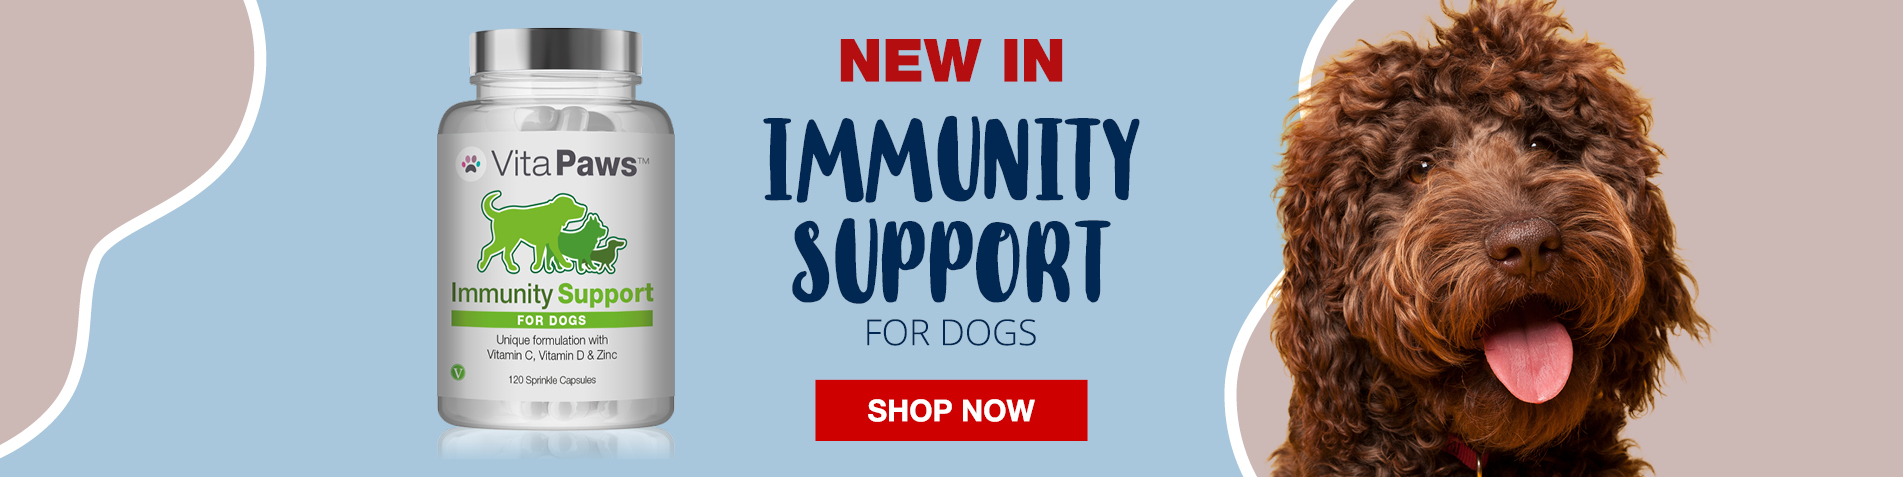 New Immunity Support Supplement for Dogs